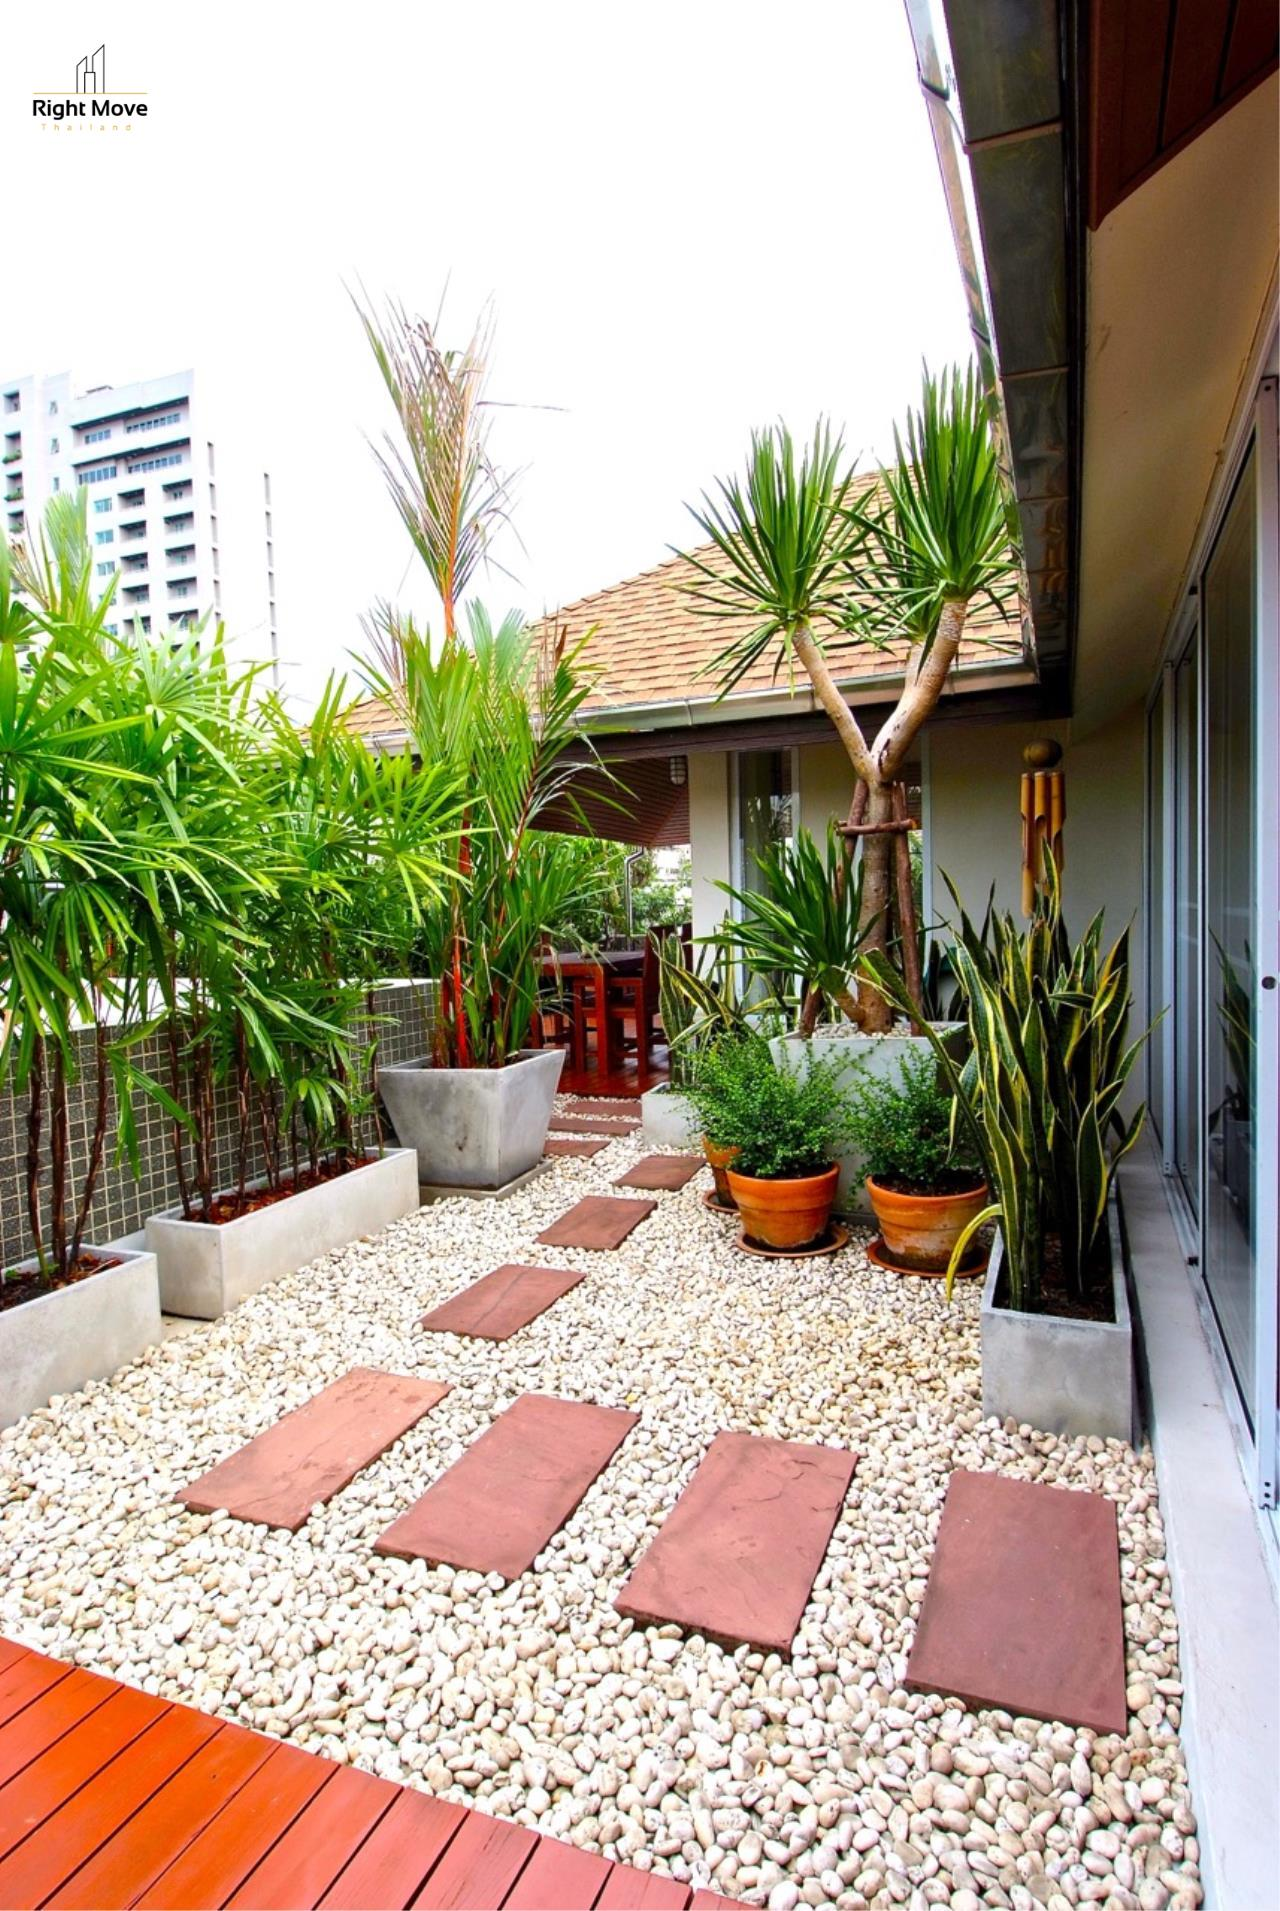 Right Move Thailand Agency's HR968 Single House For Rent 170,000 THB 4 Bedrooms 500 Sqm 5